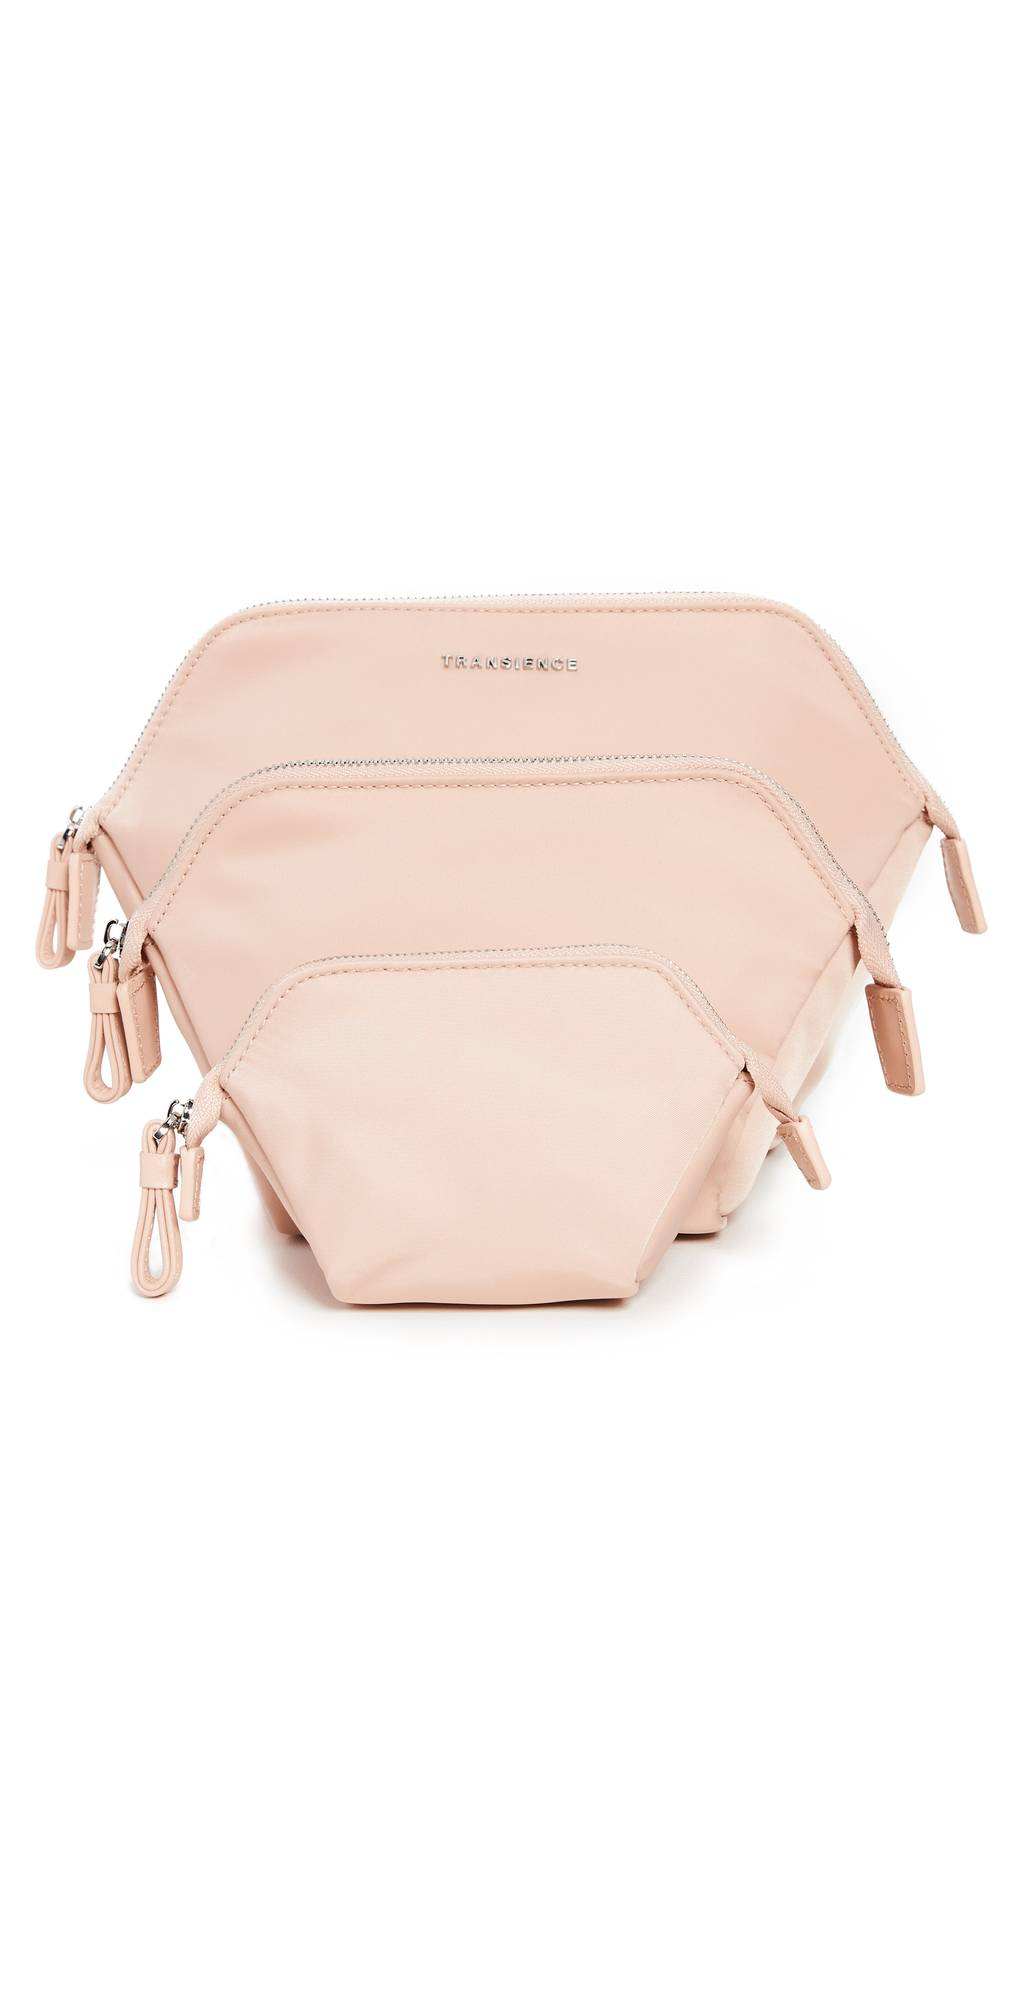 Transience Cosmetic Case Set  - Size: One Size